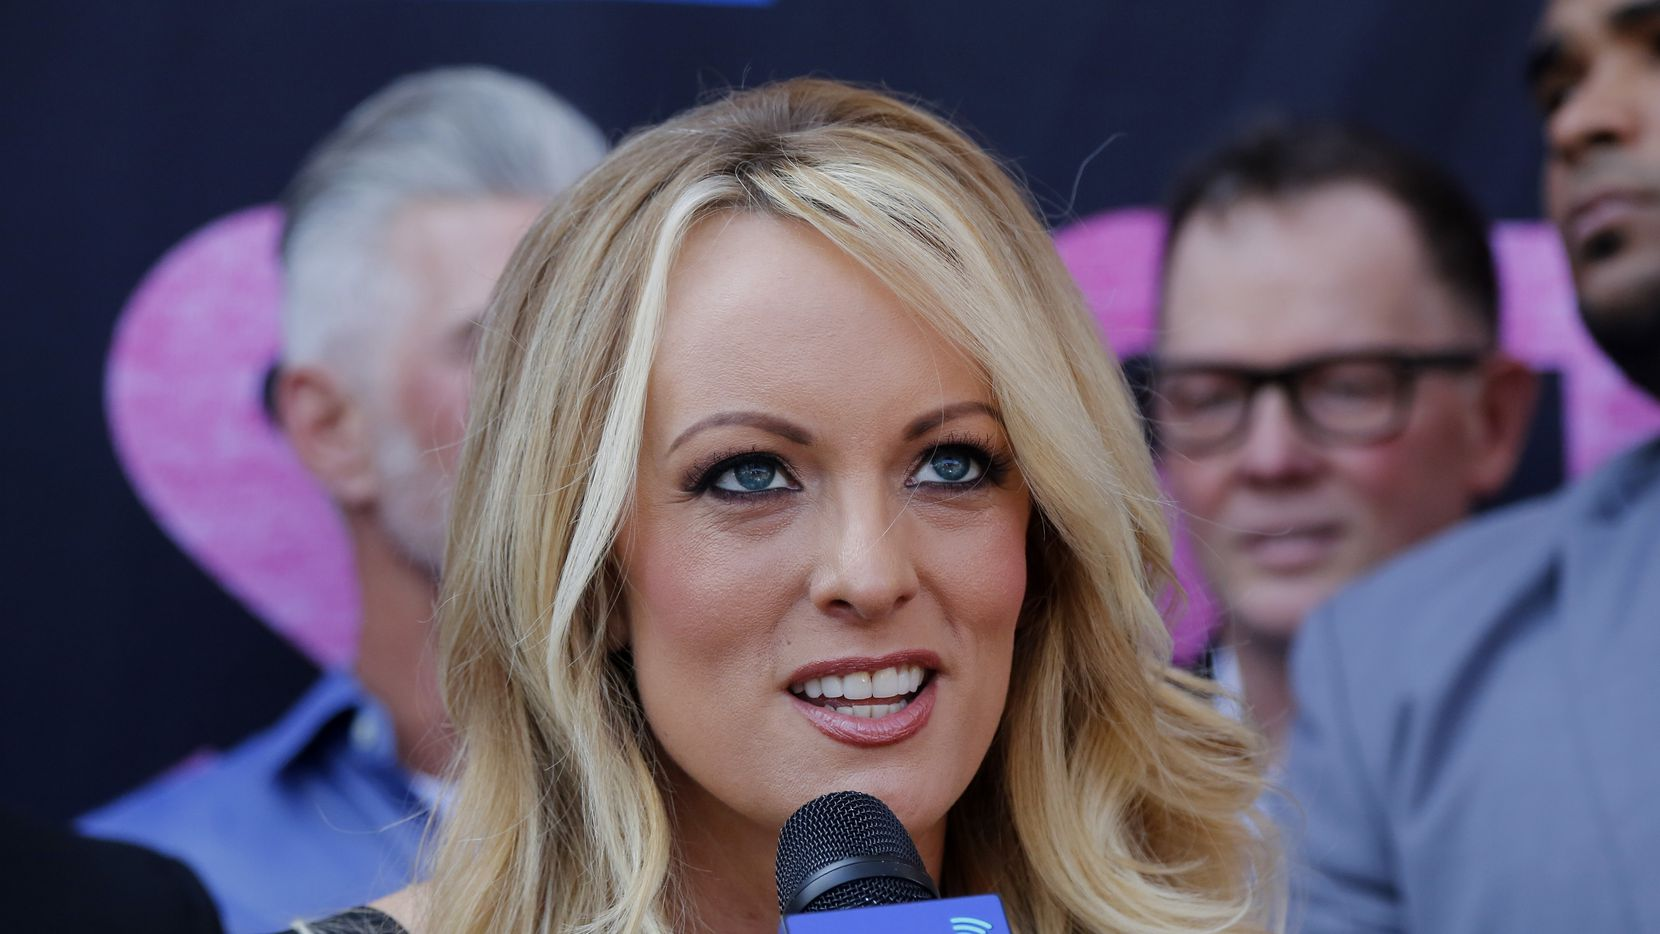 Porn actress Stormy Daniels received a Key to the City in West Hollywood, Calif., in May. Daniels has said she had a sexual relationship with Donald Trump before he became president.